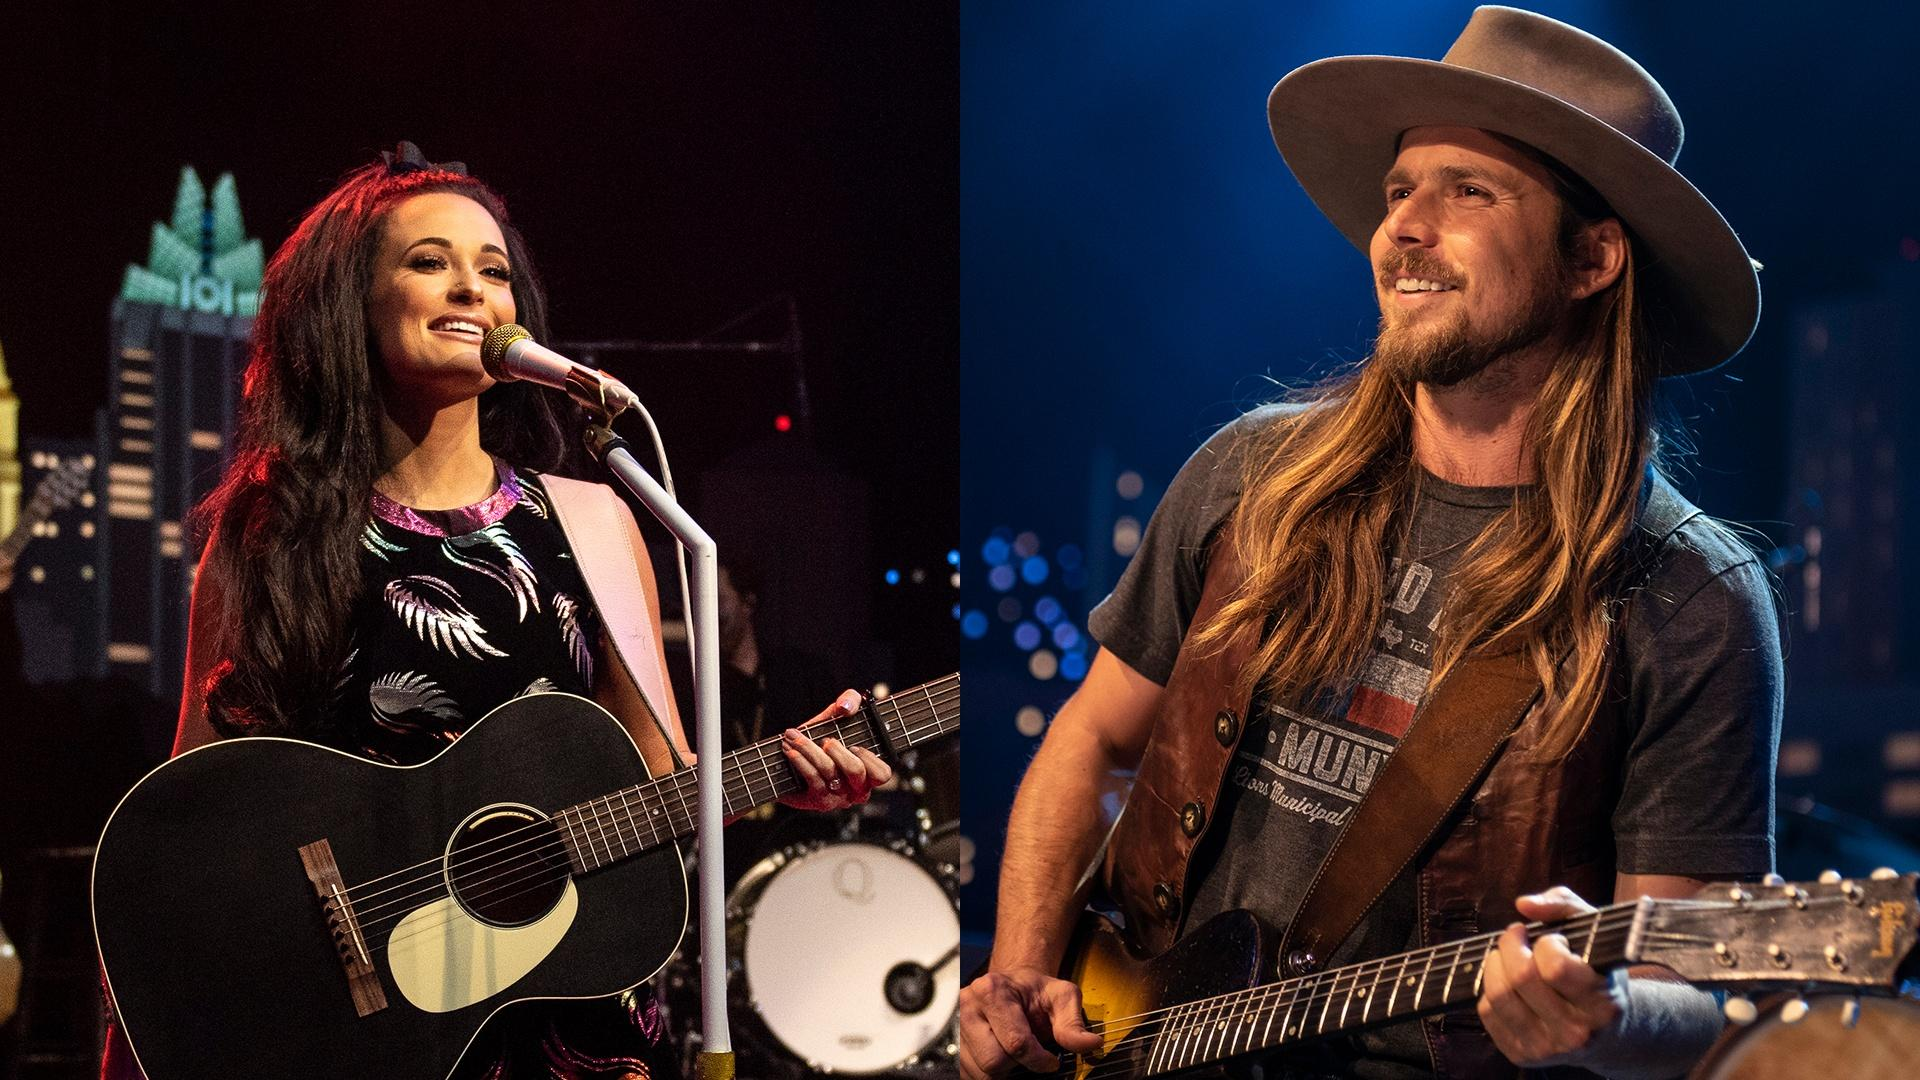 Kacey Musgraves / Lukas Nelson & Promise of the Real